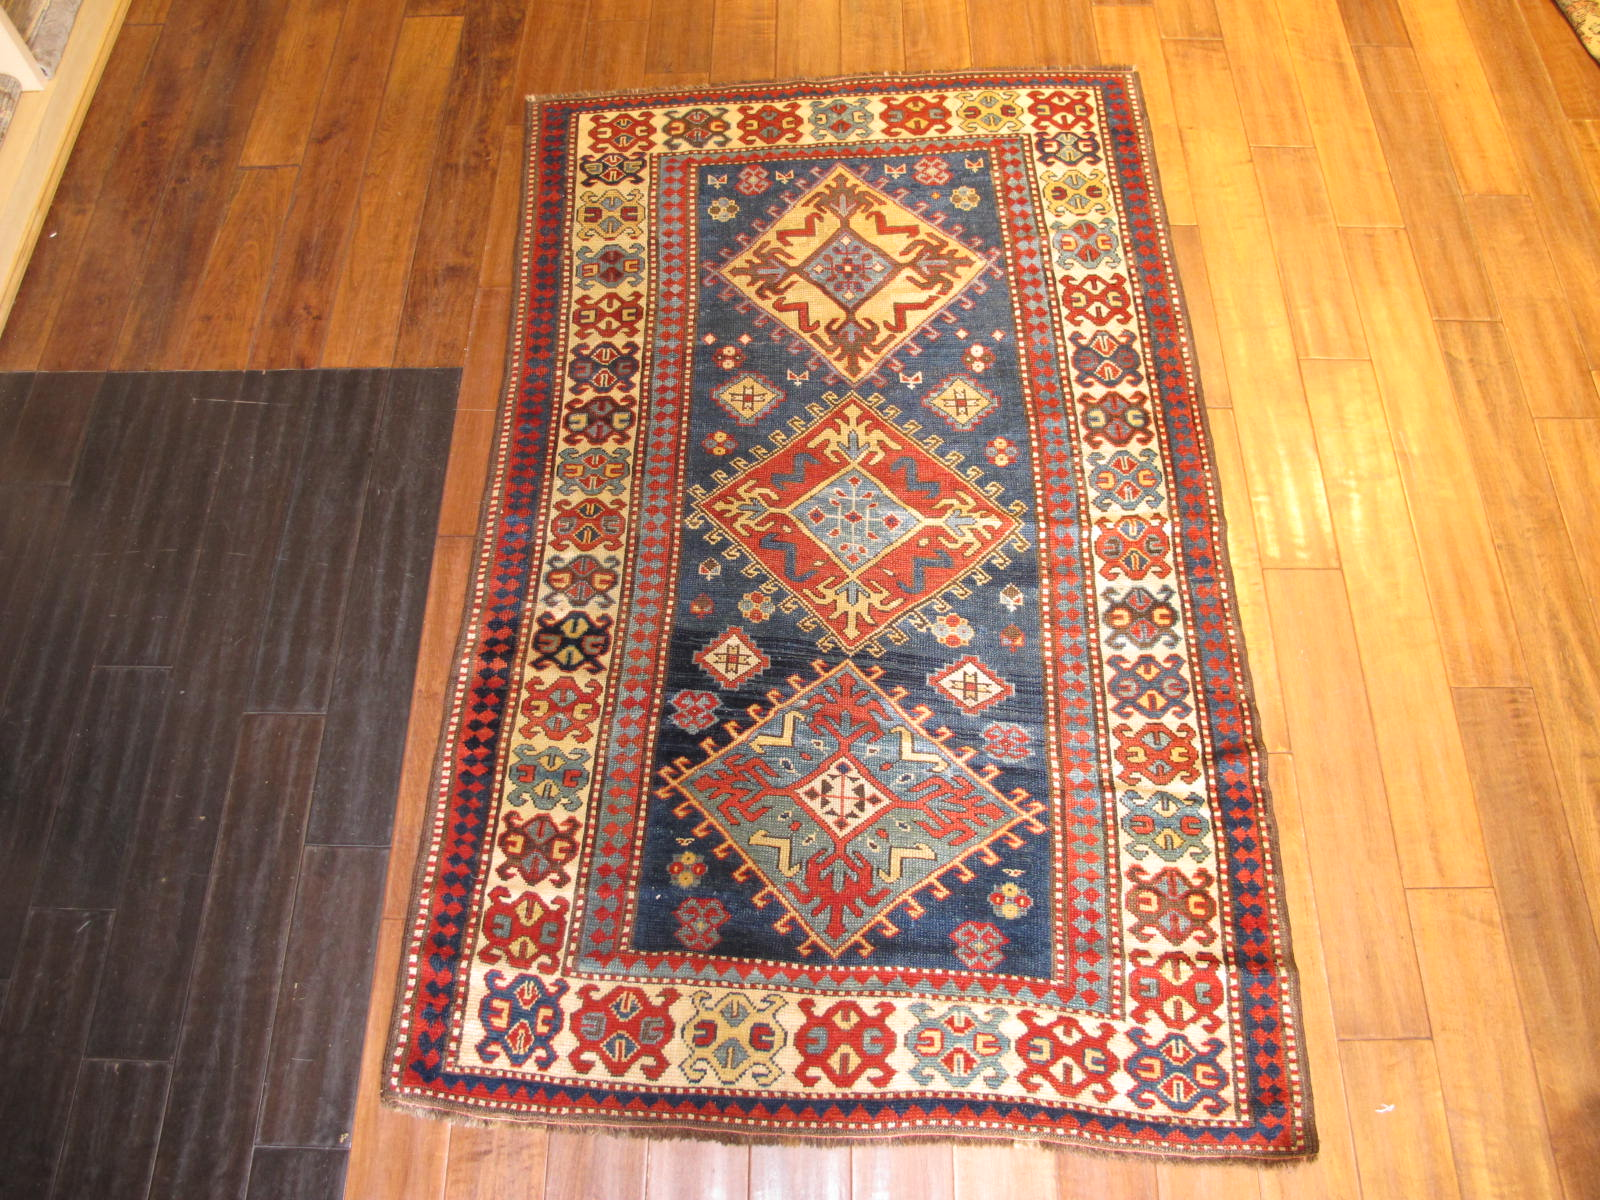 Genje Rug | Caucasus | Antique ~1890s